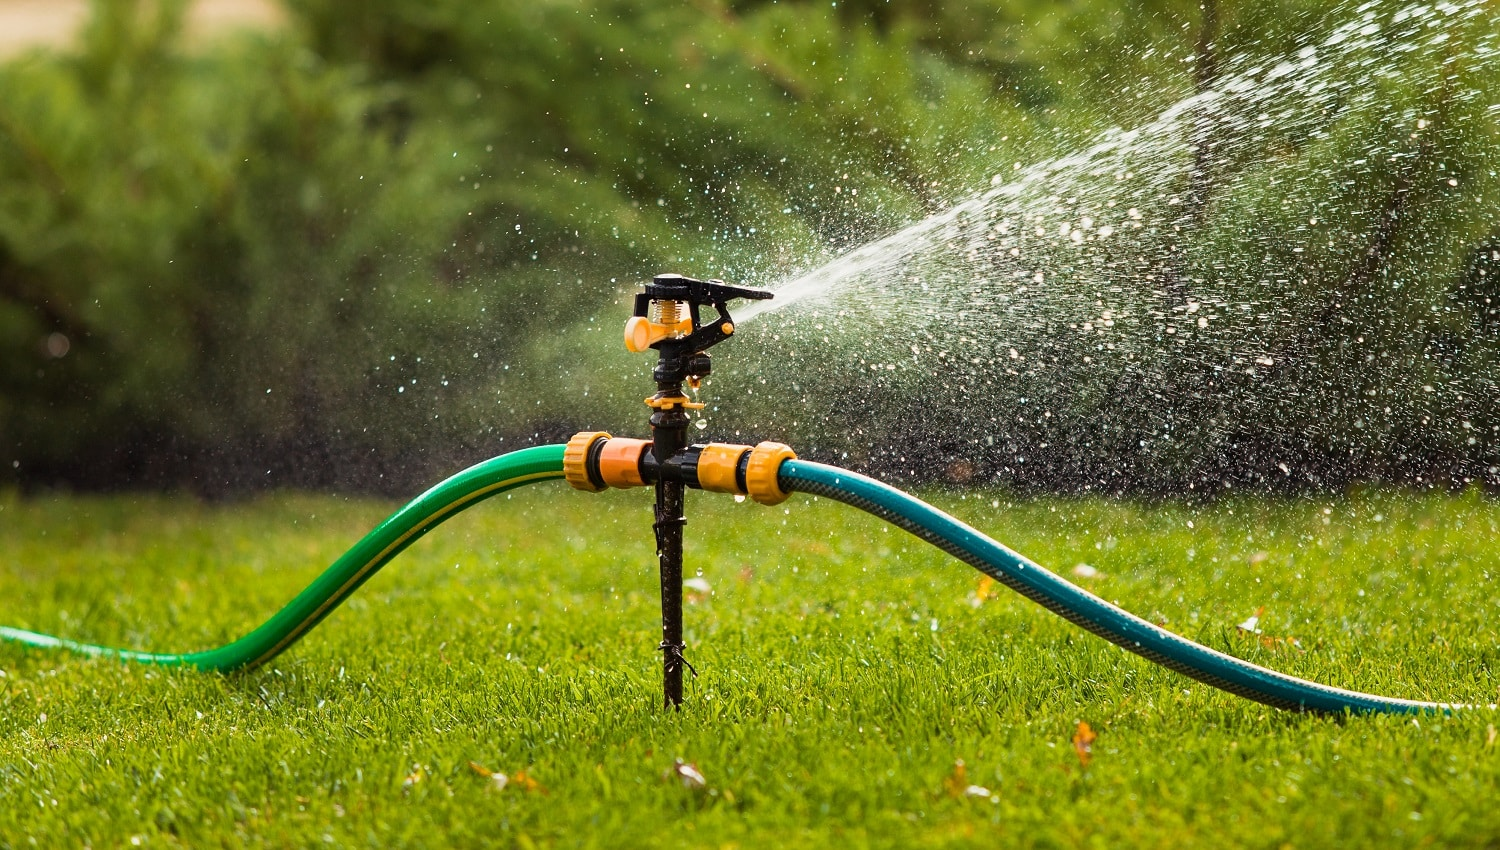 Watering lawn grass in the garden